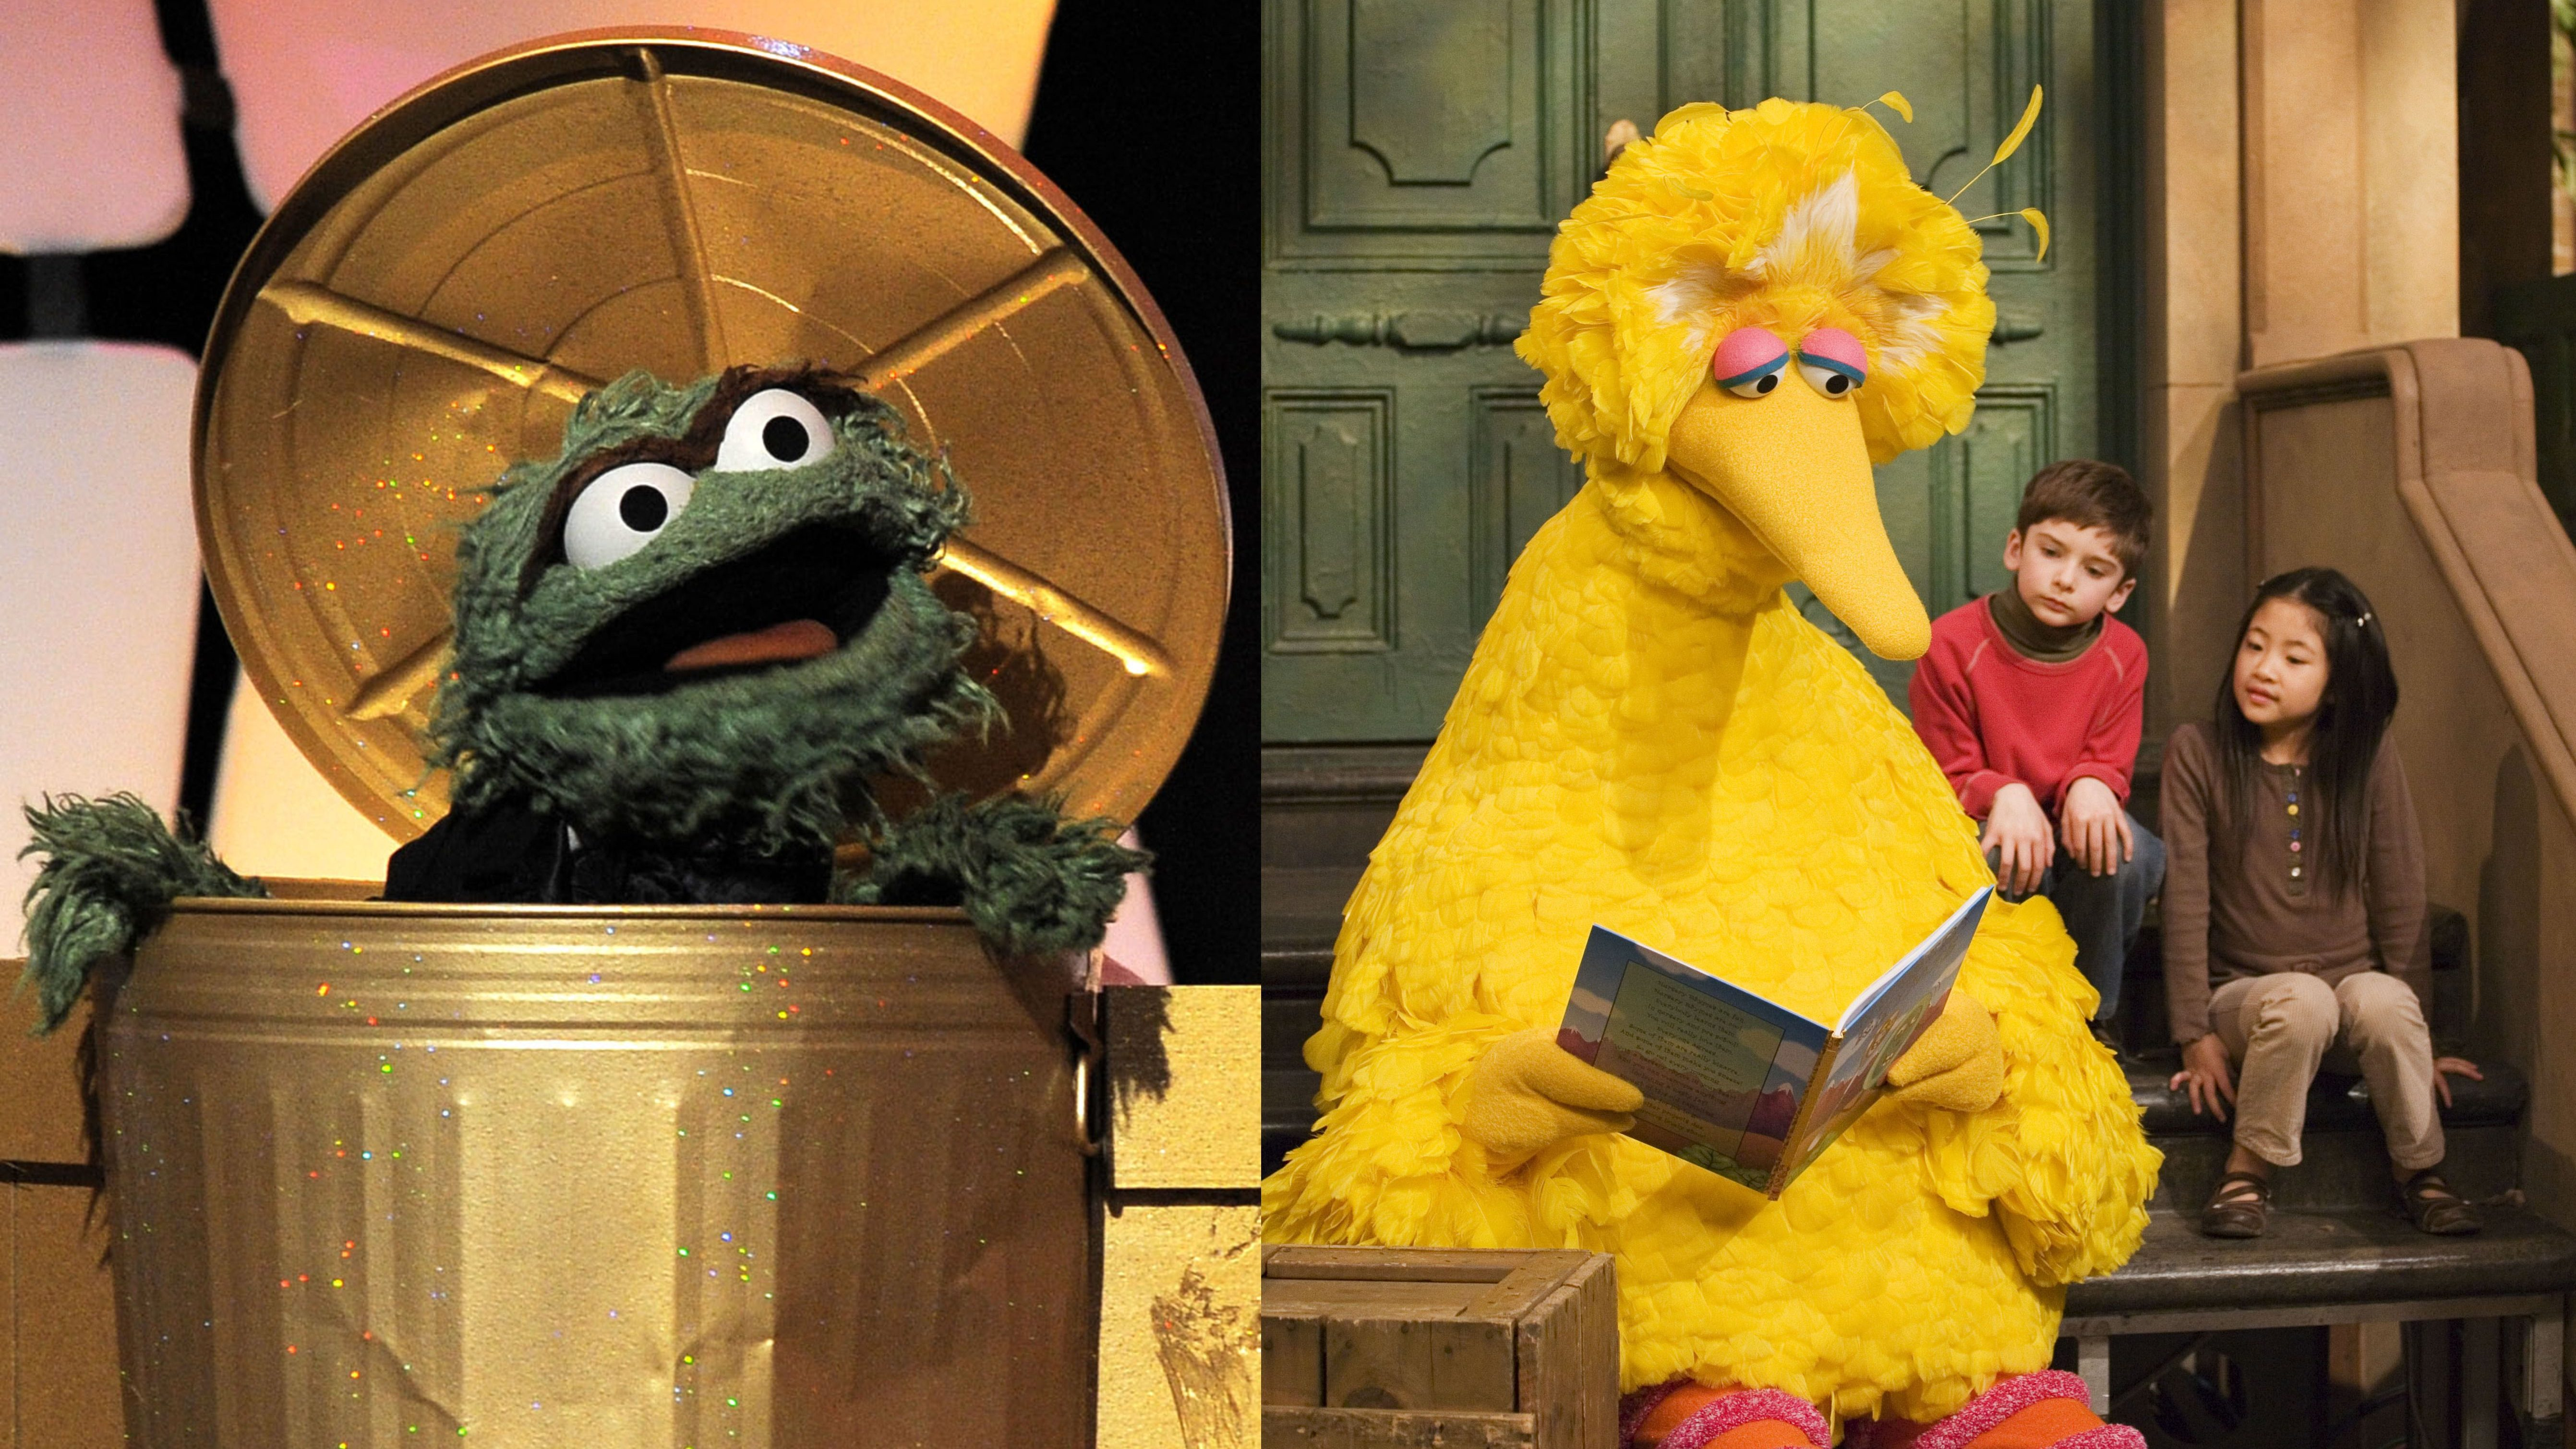 The man behind Big Bird and Oscar the Grouch speaks to the dualities inside us all